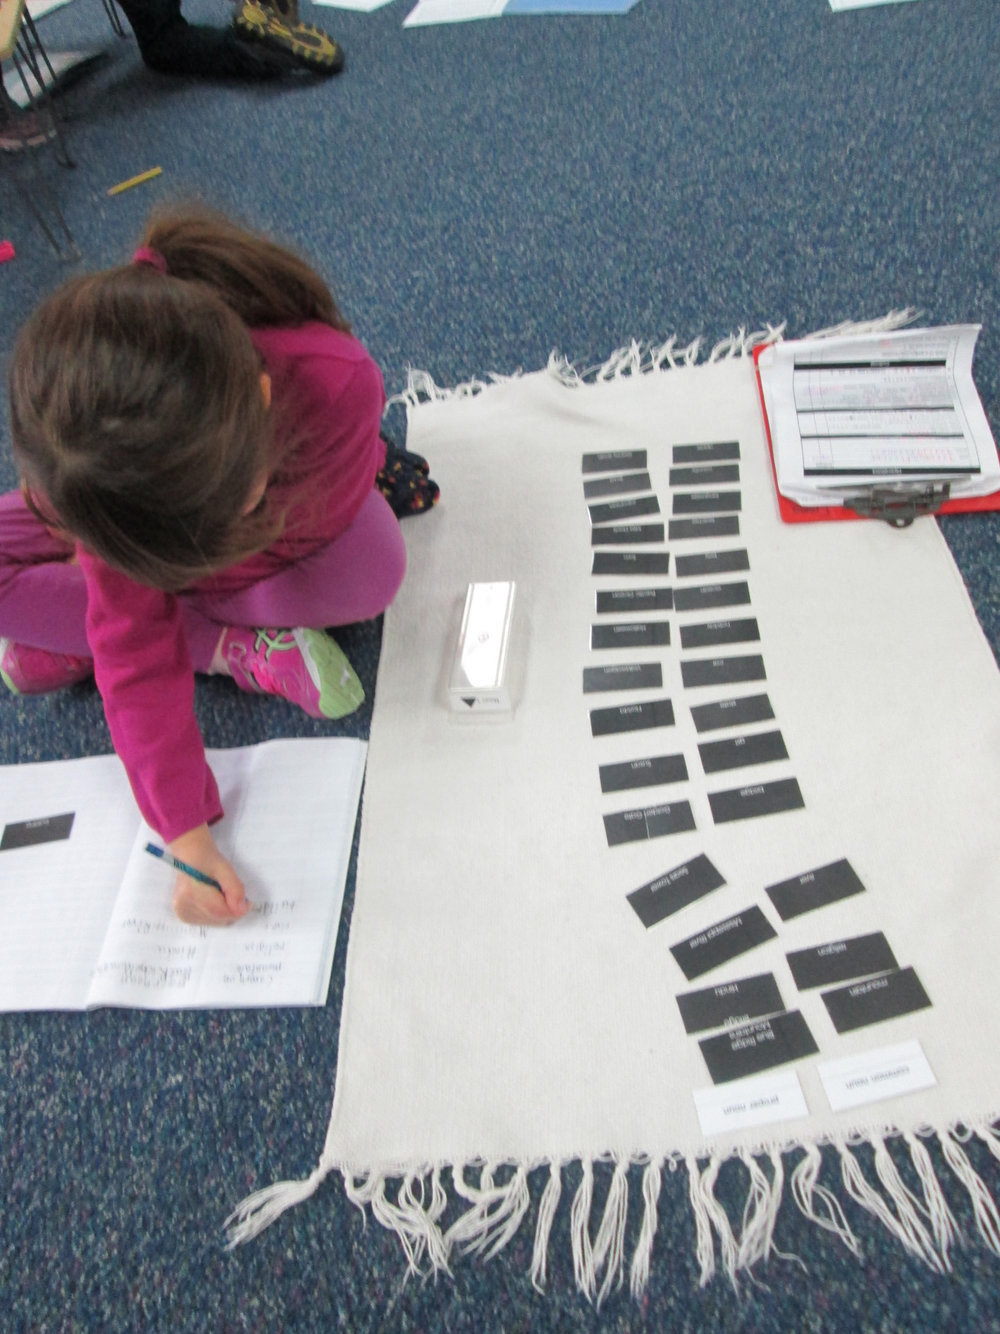 A first grade Lower Elementary East student diligently worked on a follow-up focused on common vs. proper nouns.  This work required the student to sort the cards into their correct categories, write them in the Language notebook and symbolize them.  While this would seem to be a fairly quick and easy task for an adult, it requires each student to maintain focus, dedication and determination.